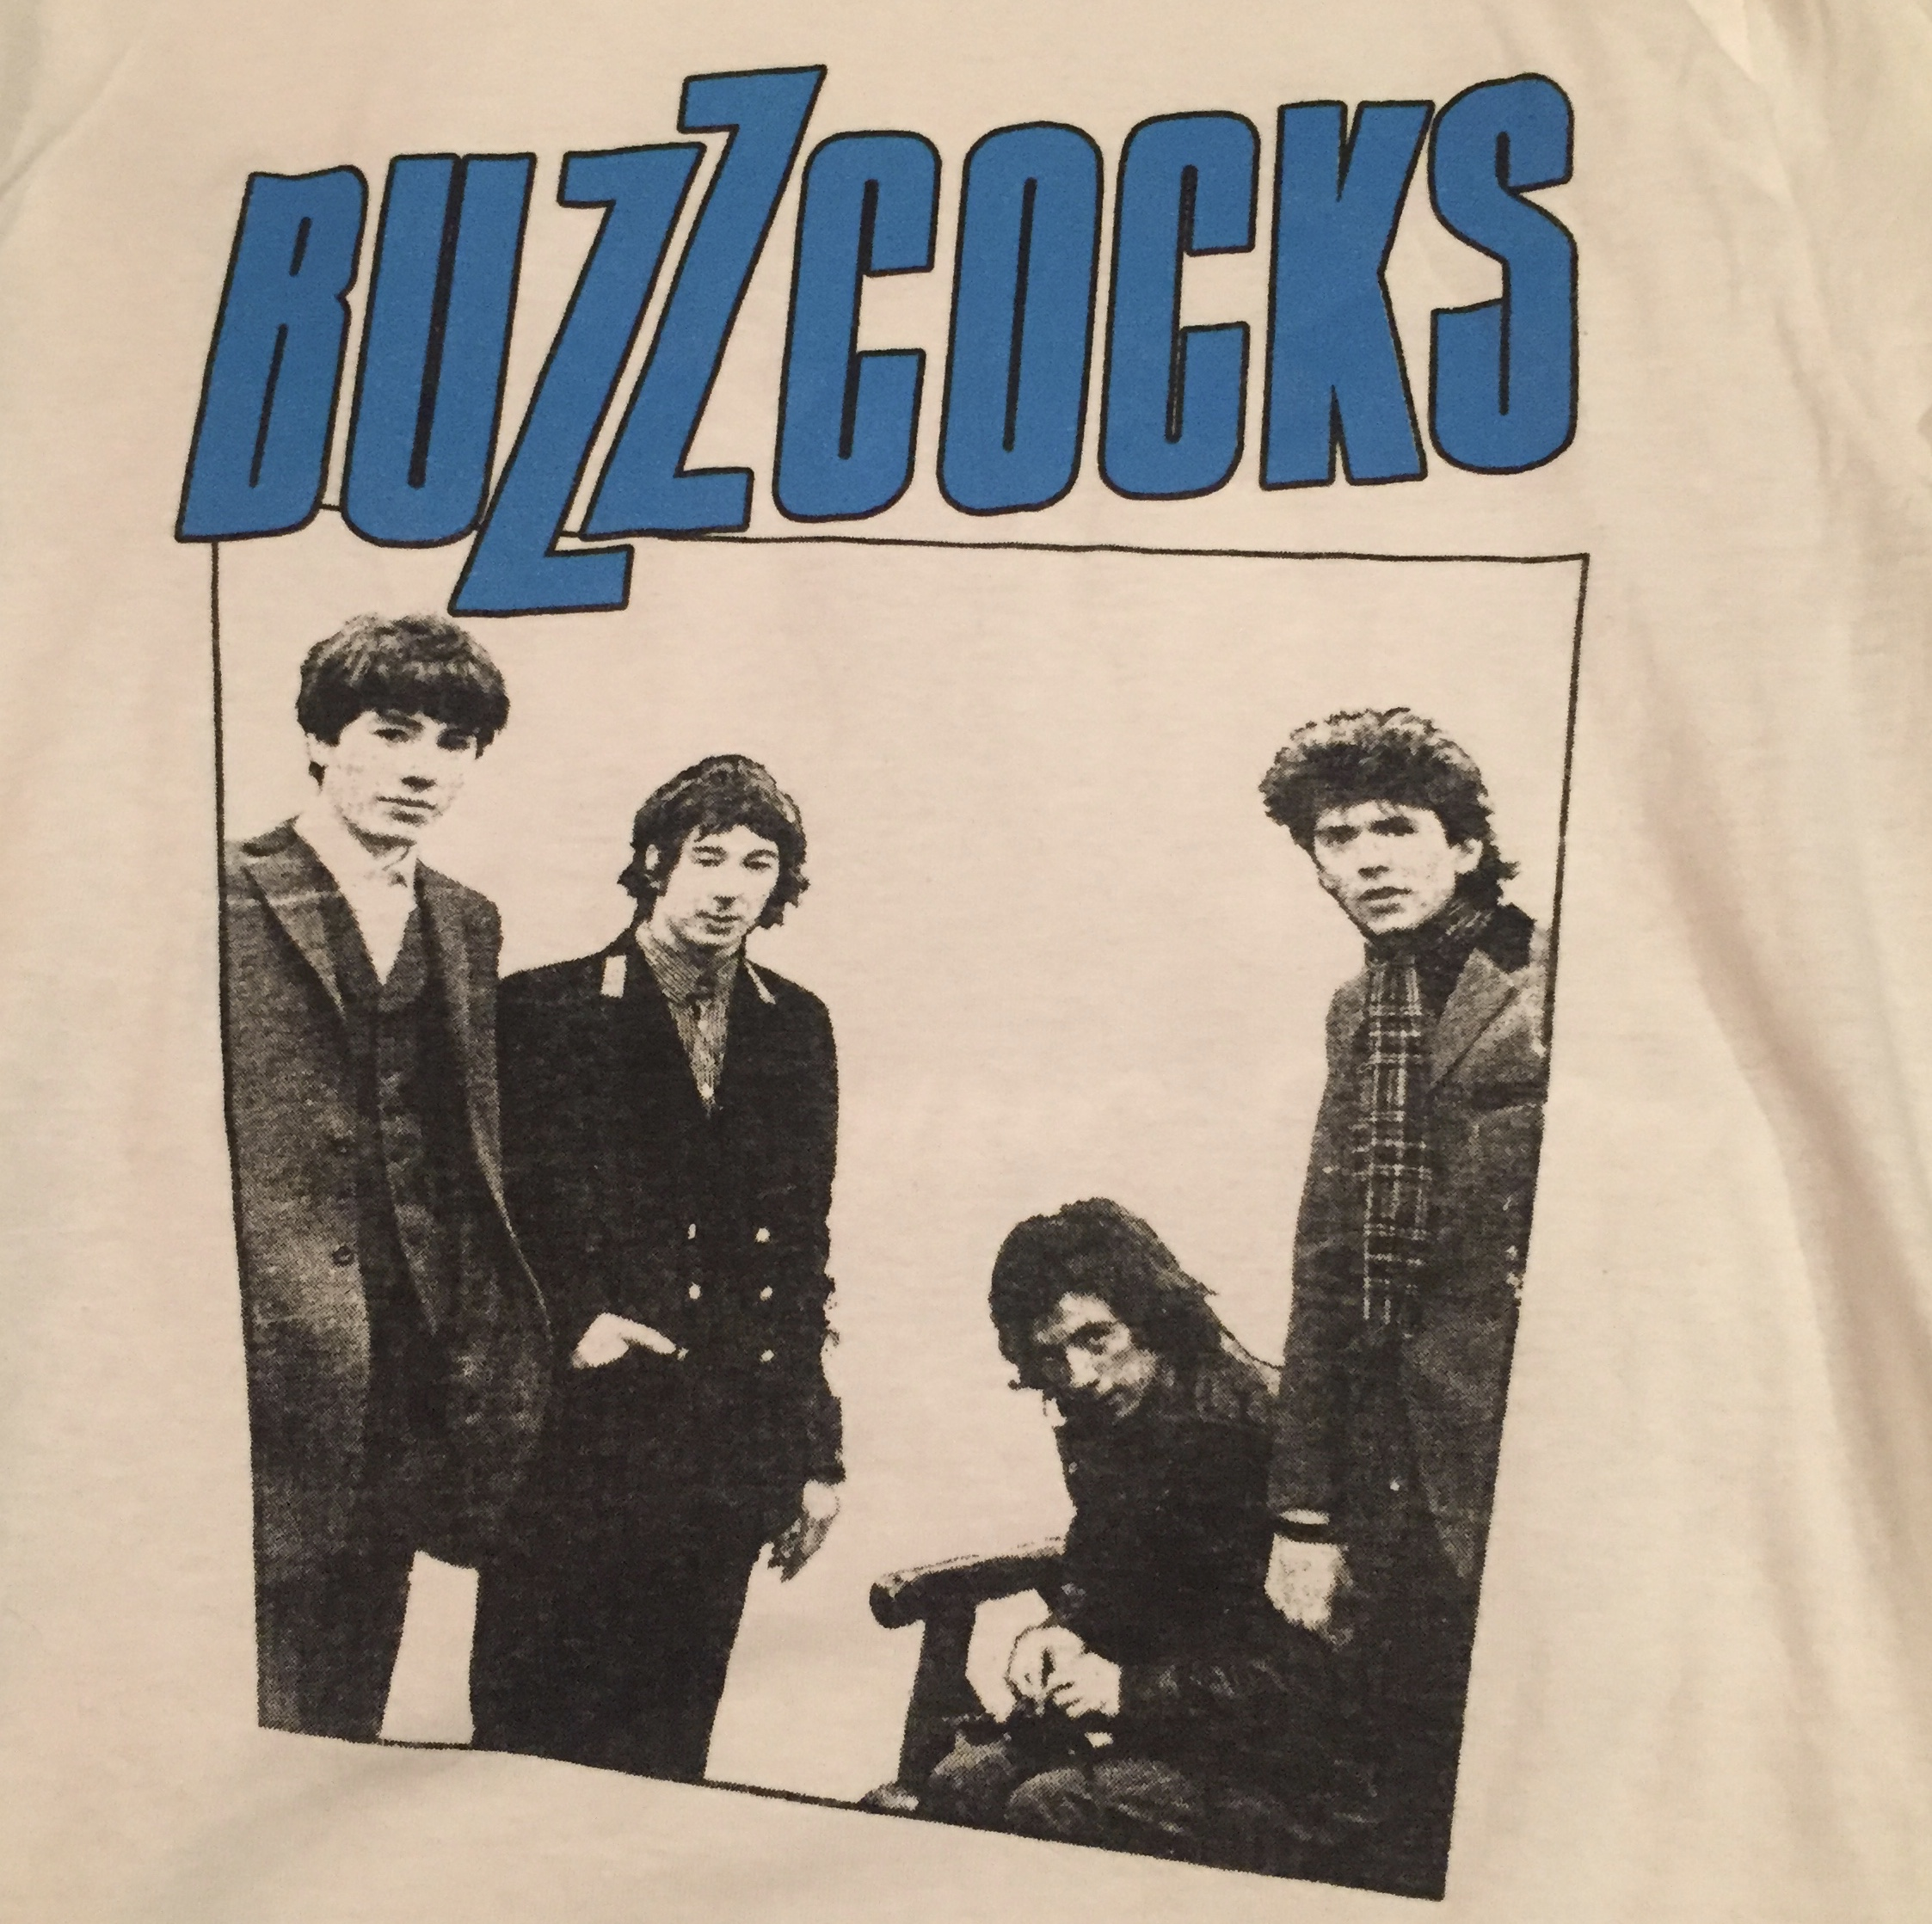 Buzzcocks - Band - Shirt